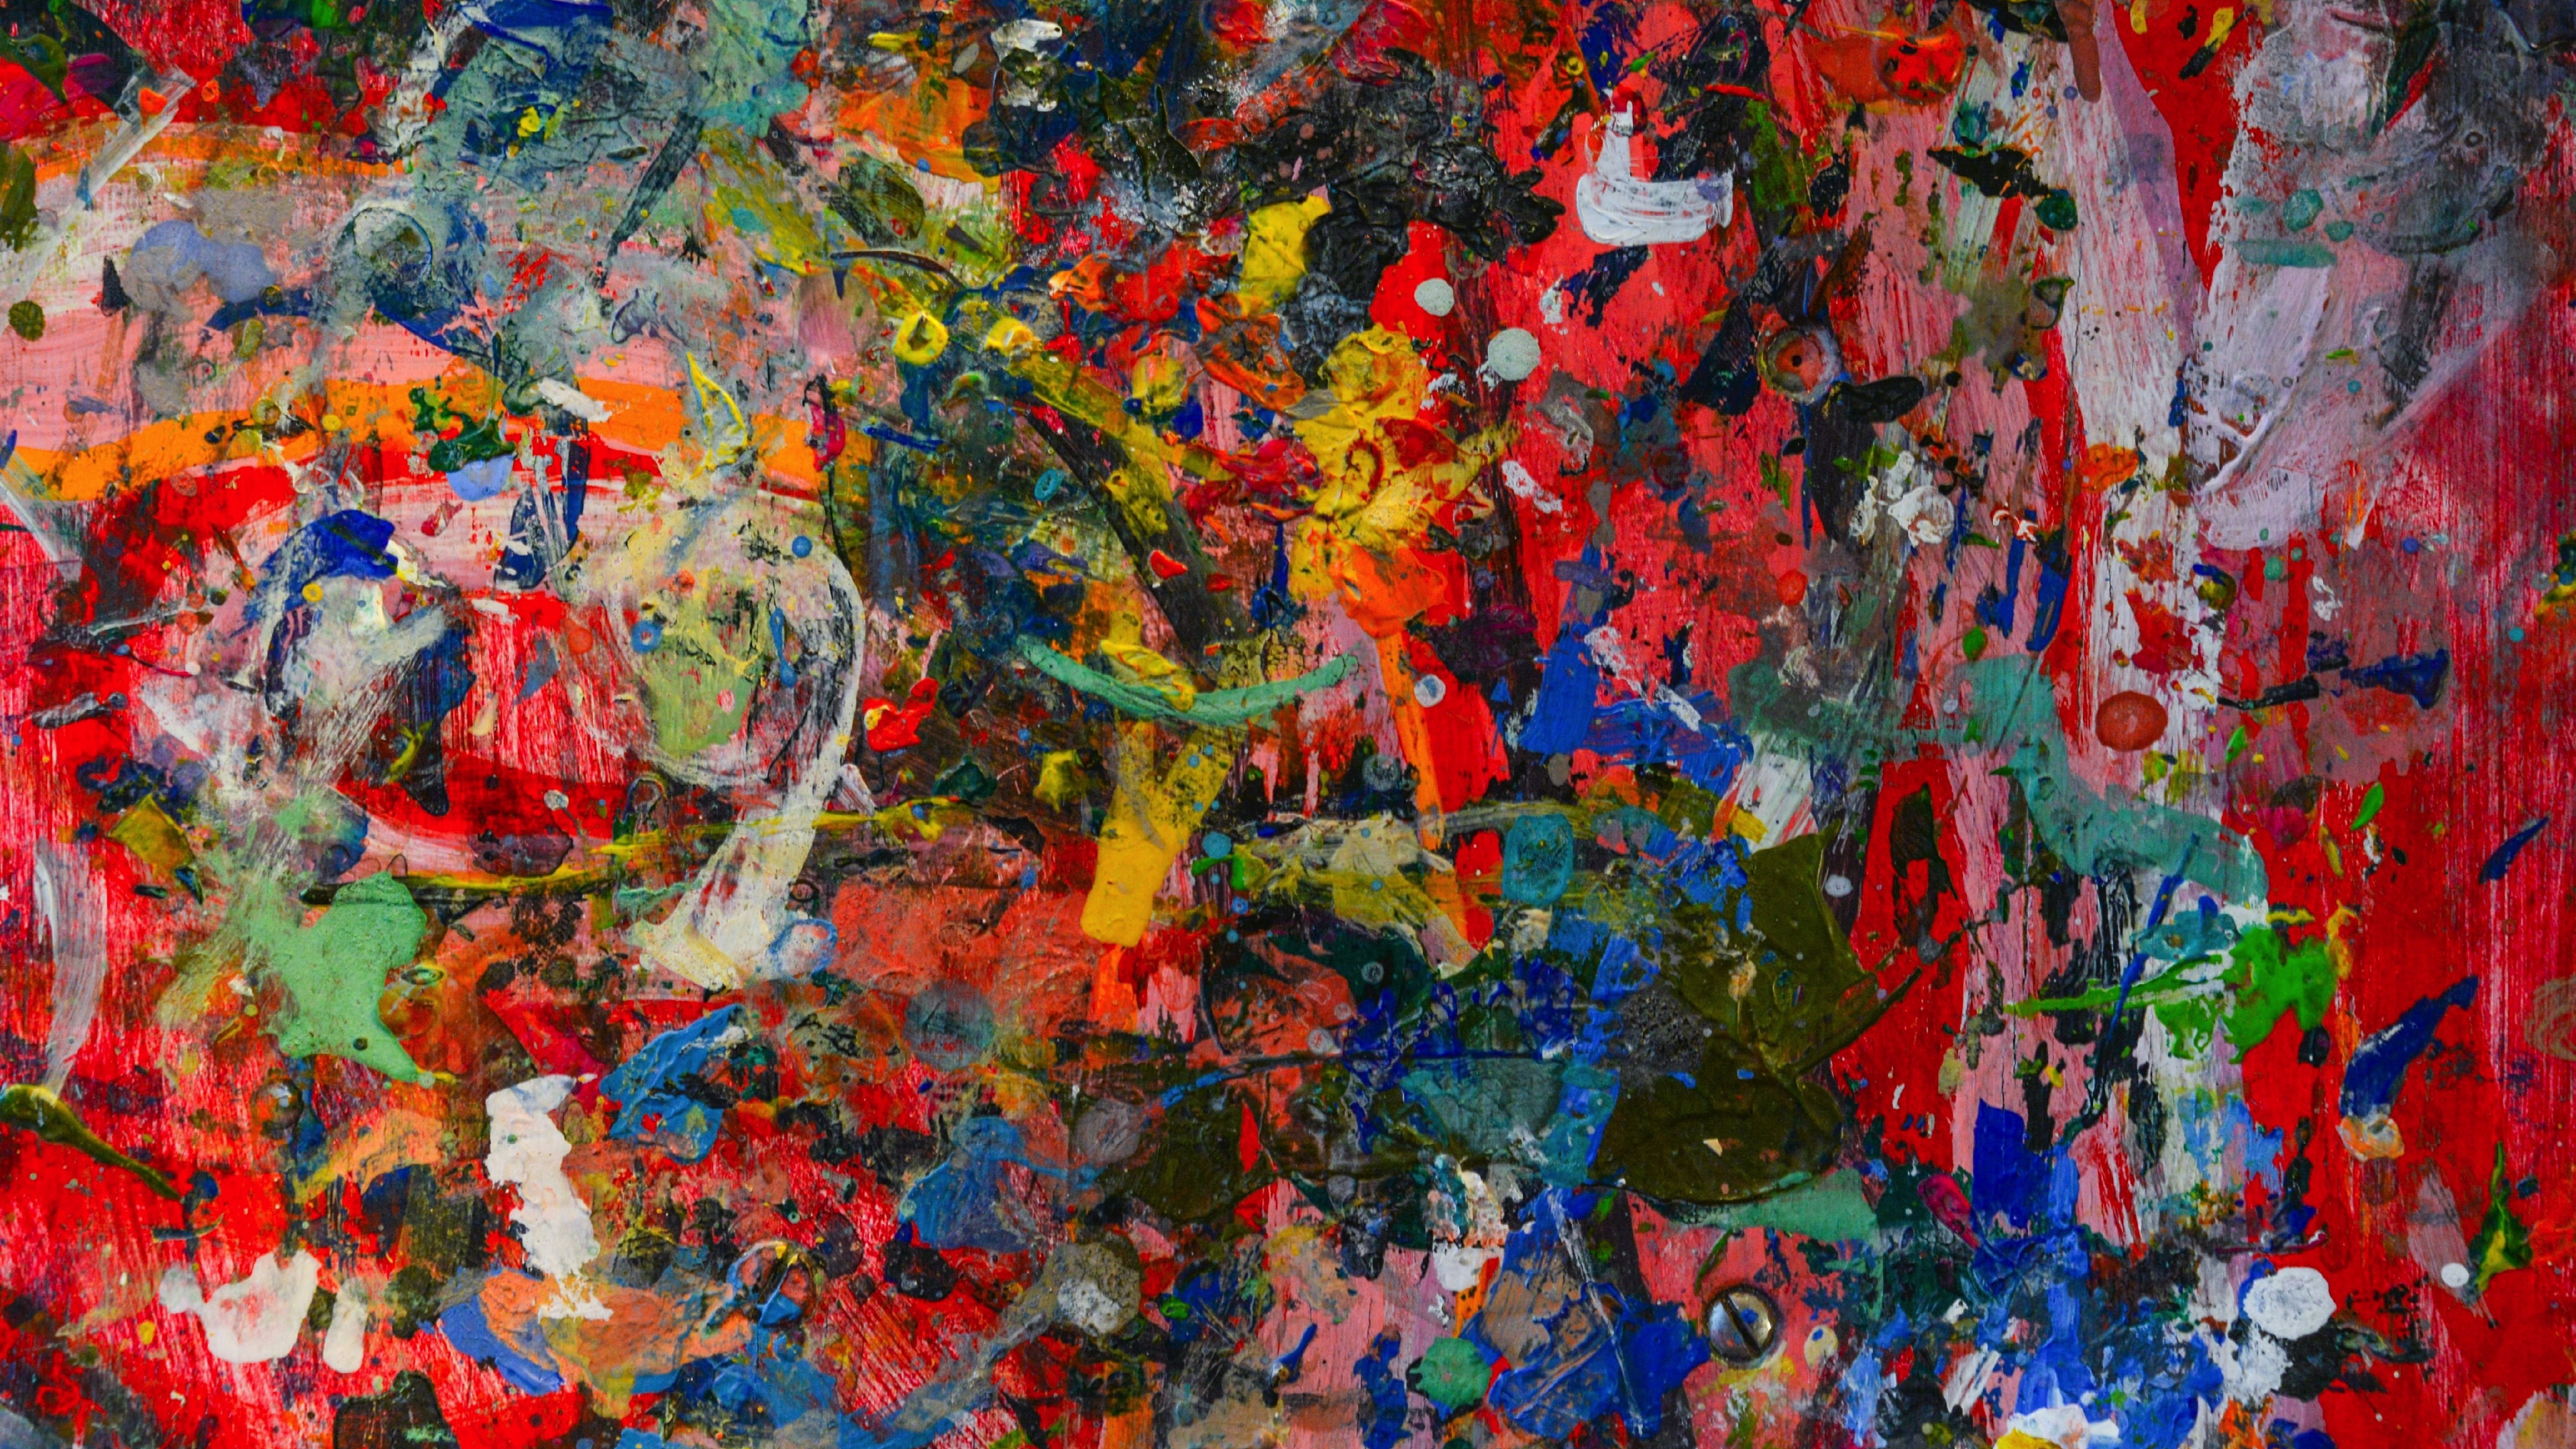 Color Spatters, Colorful, Texture, Wallpaper - Art Painting Wallpaper Iphone - HD Wallpaper